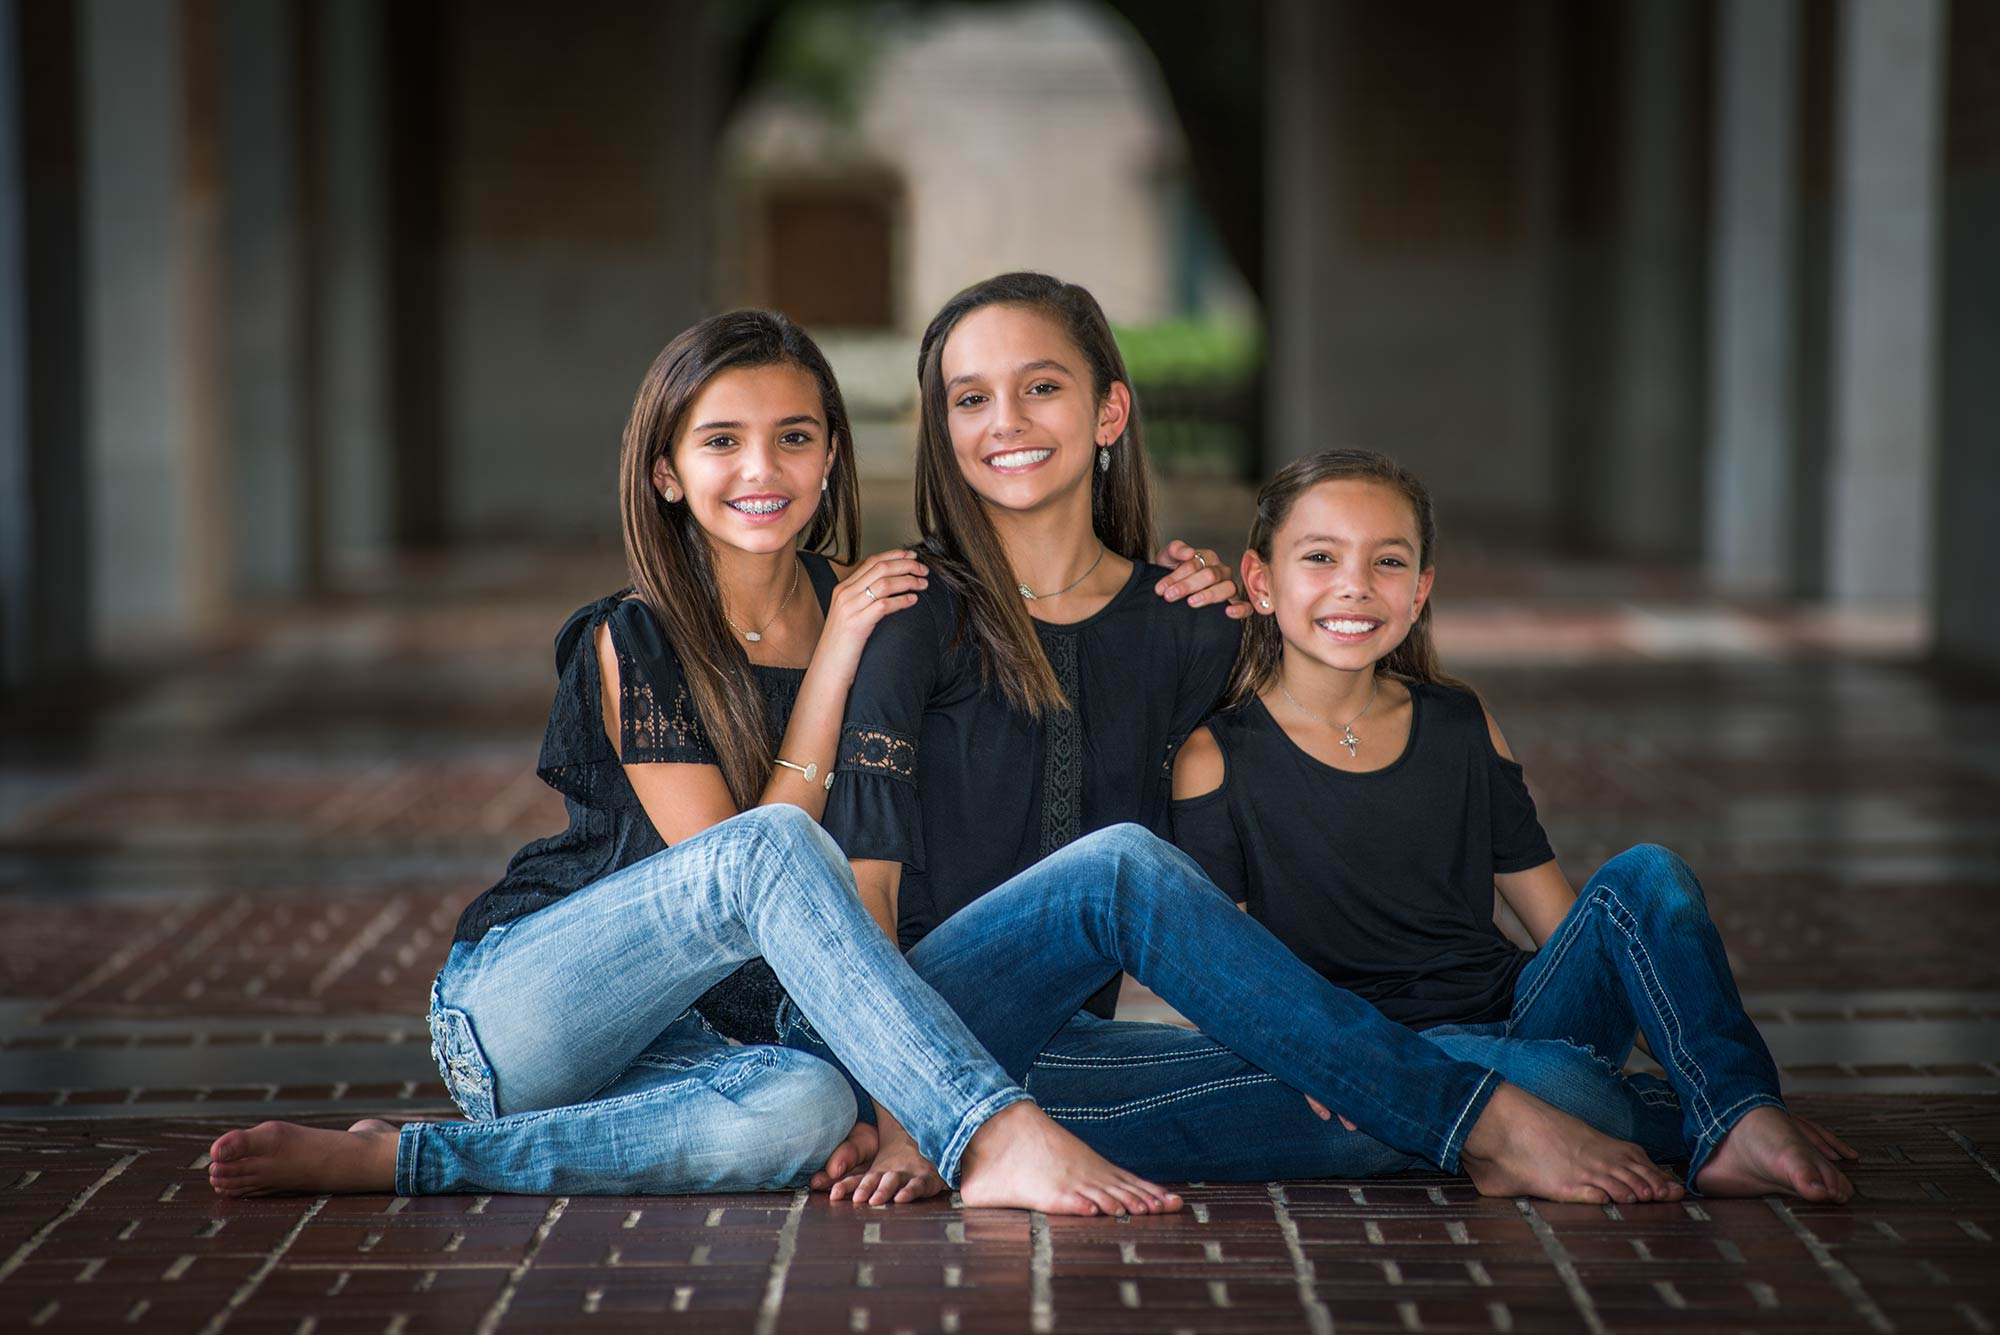 Outdoor Family Portrait Photographer